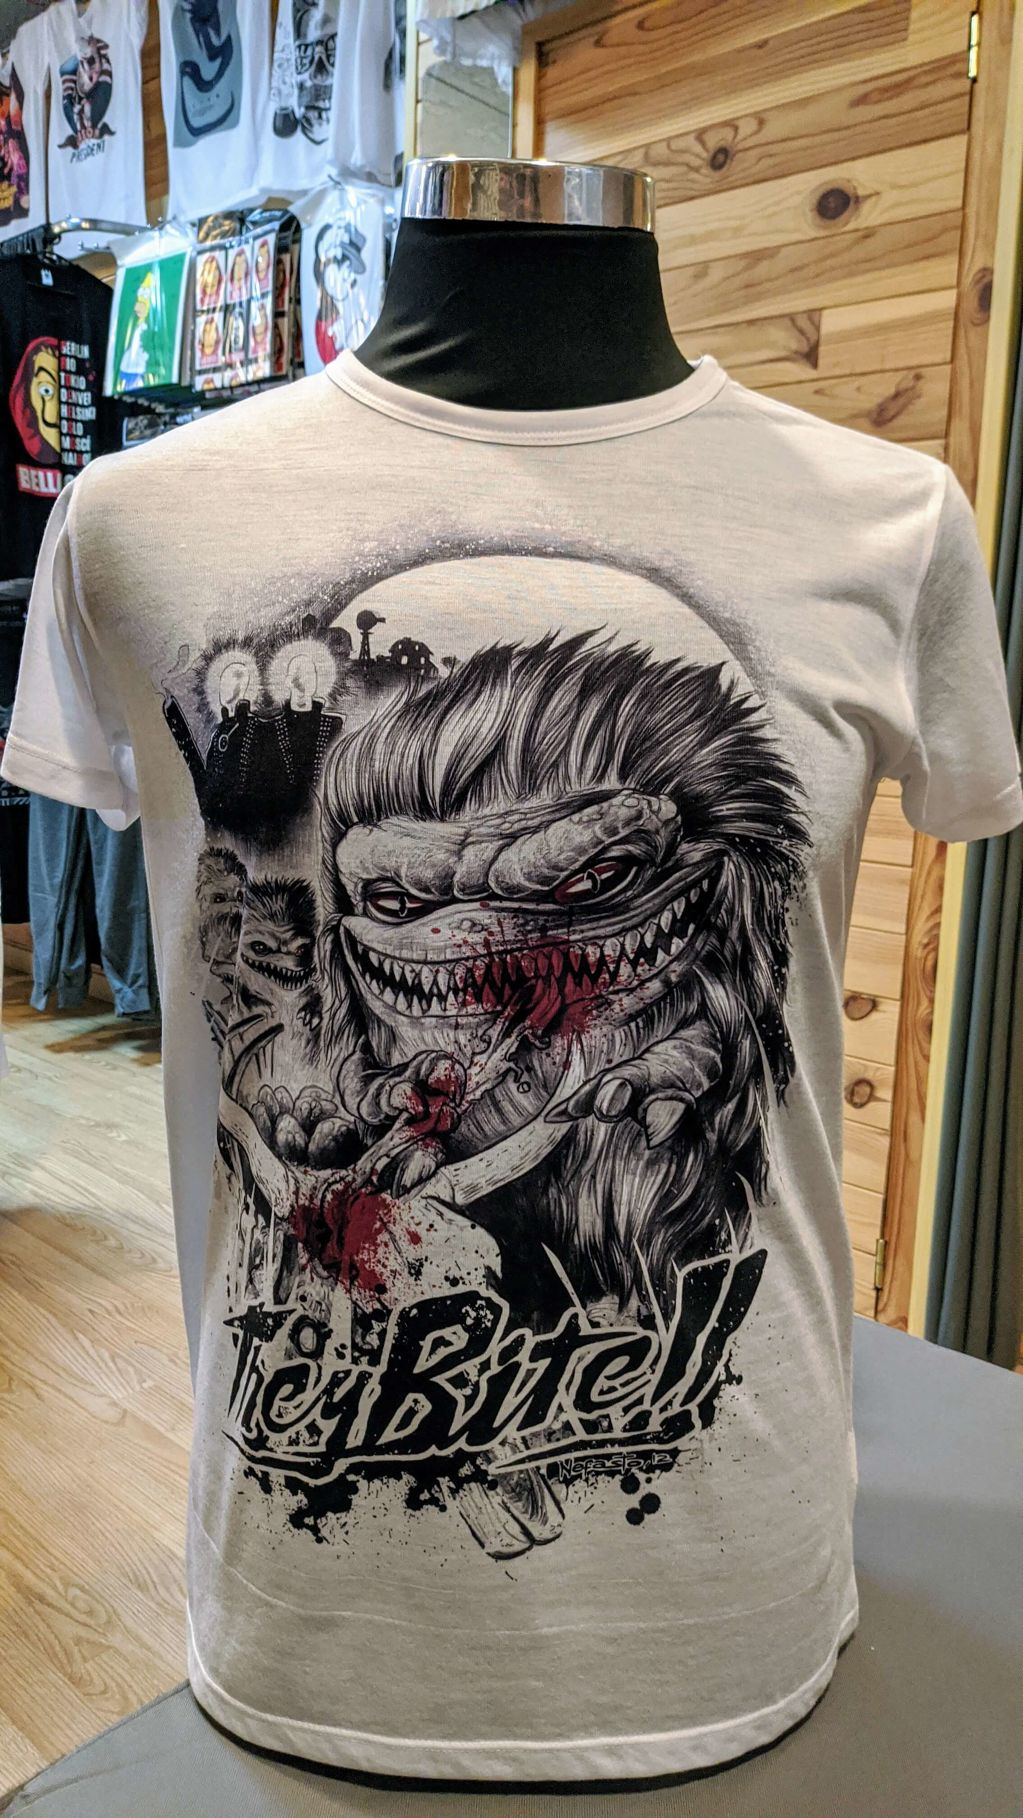 They bite!! - a3707-camiseta-critters.jpg